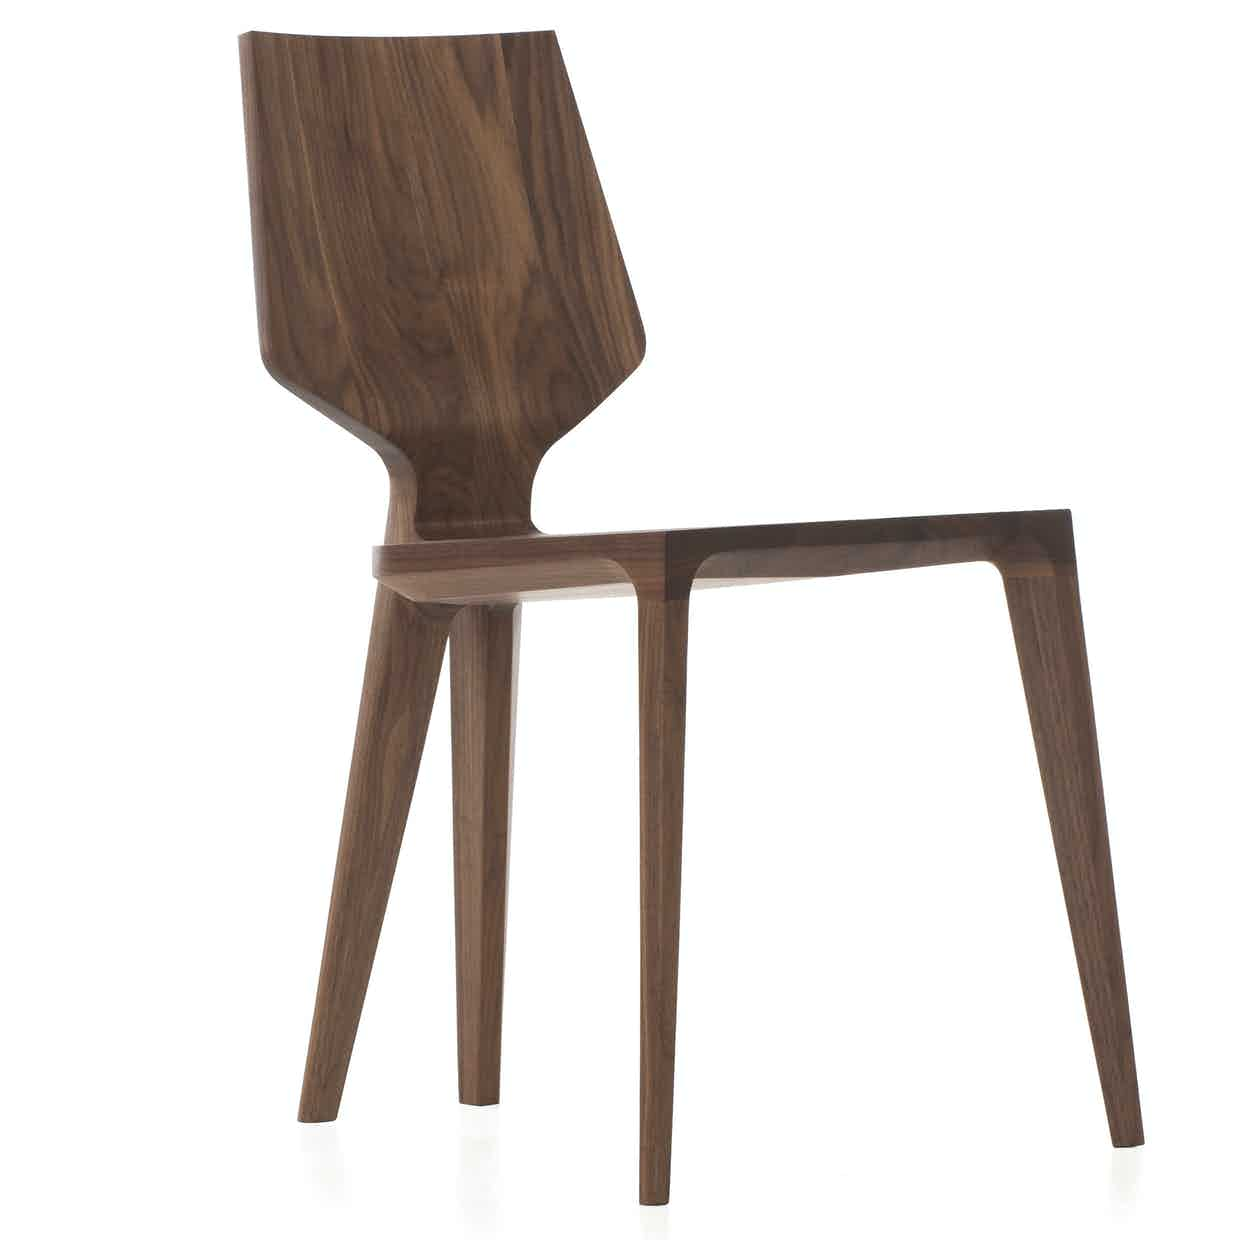 De La Espada Matthew Hilton Marys Chair Haute Living